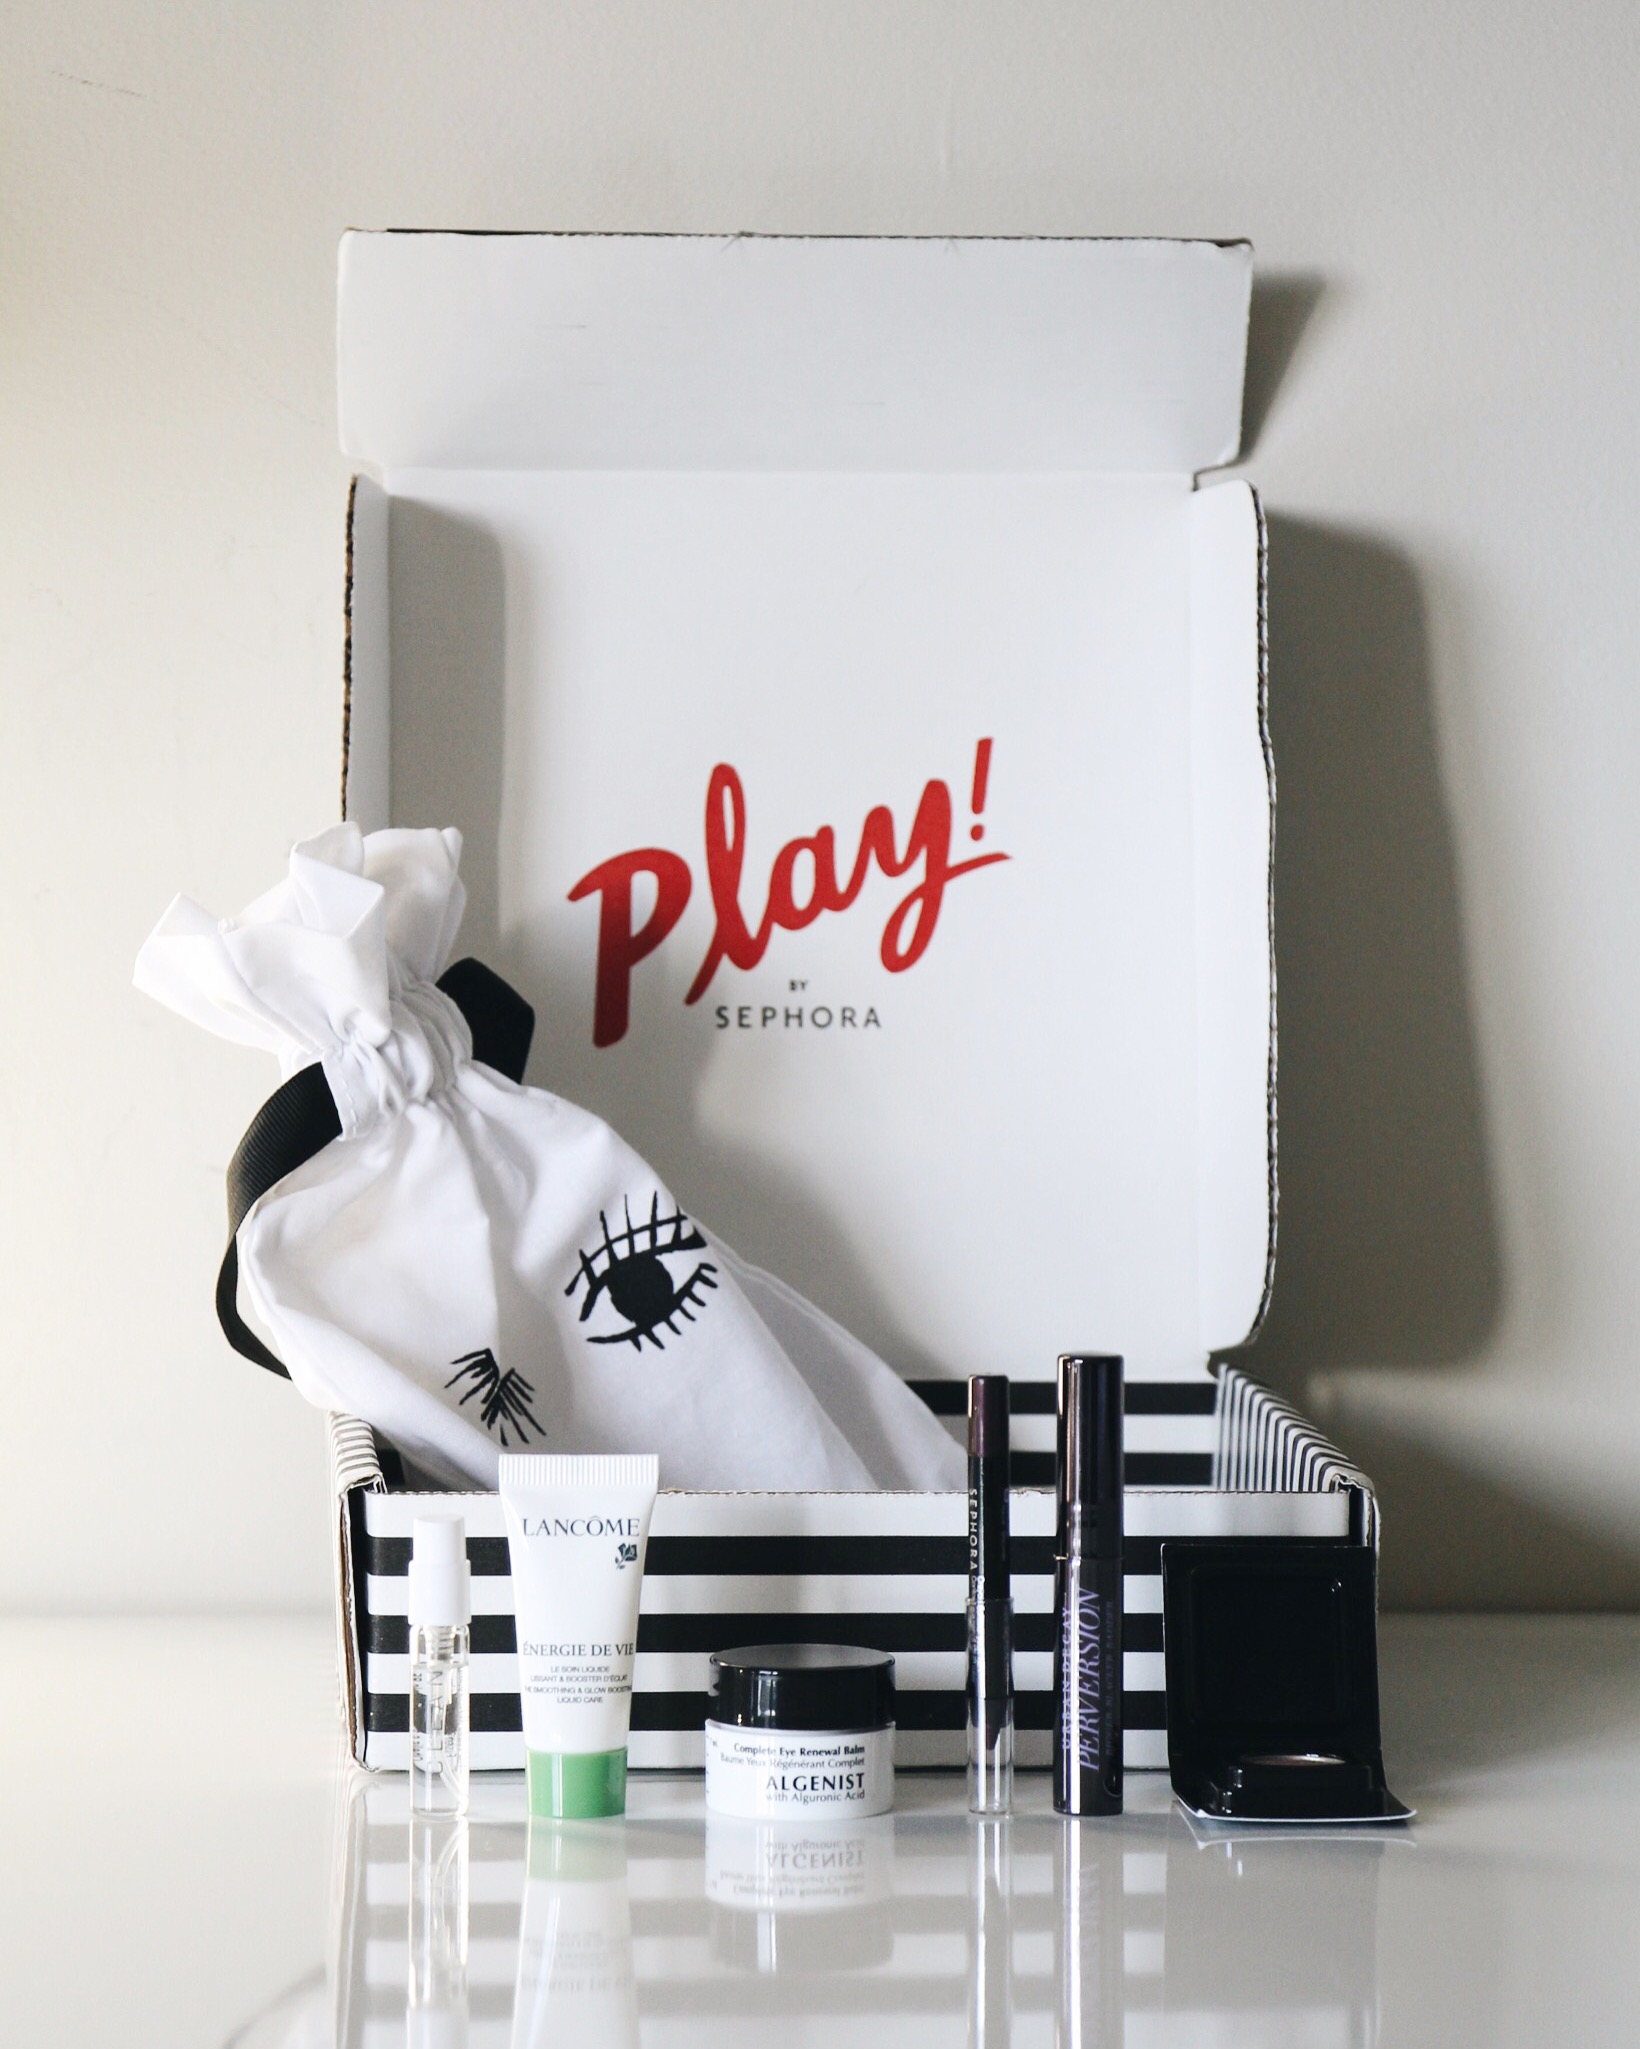 Play! By Sephora August 2016 Subscription Box Reveal, Sephora Play Box, Play! By Sephora, Play By Sephora, Sephora Play August 2016 Box, Sephora Play Review, Play by Sephora Review, Sephora Play Unboxing, Play By Sephora August Box, Sephora Play August Box, play by sephora august 2016